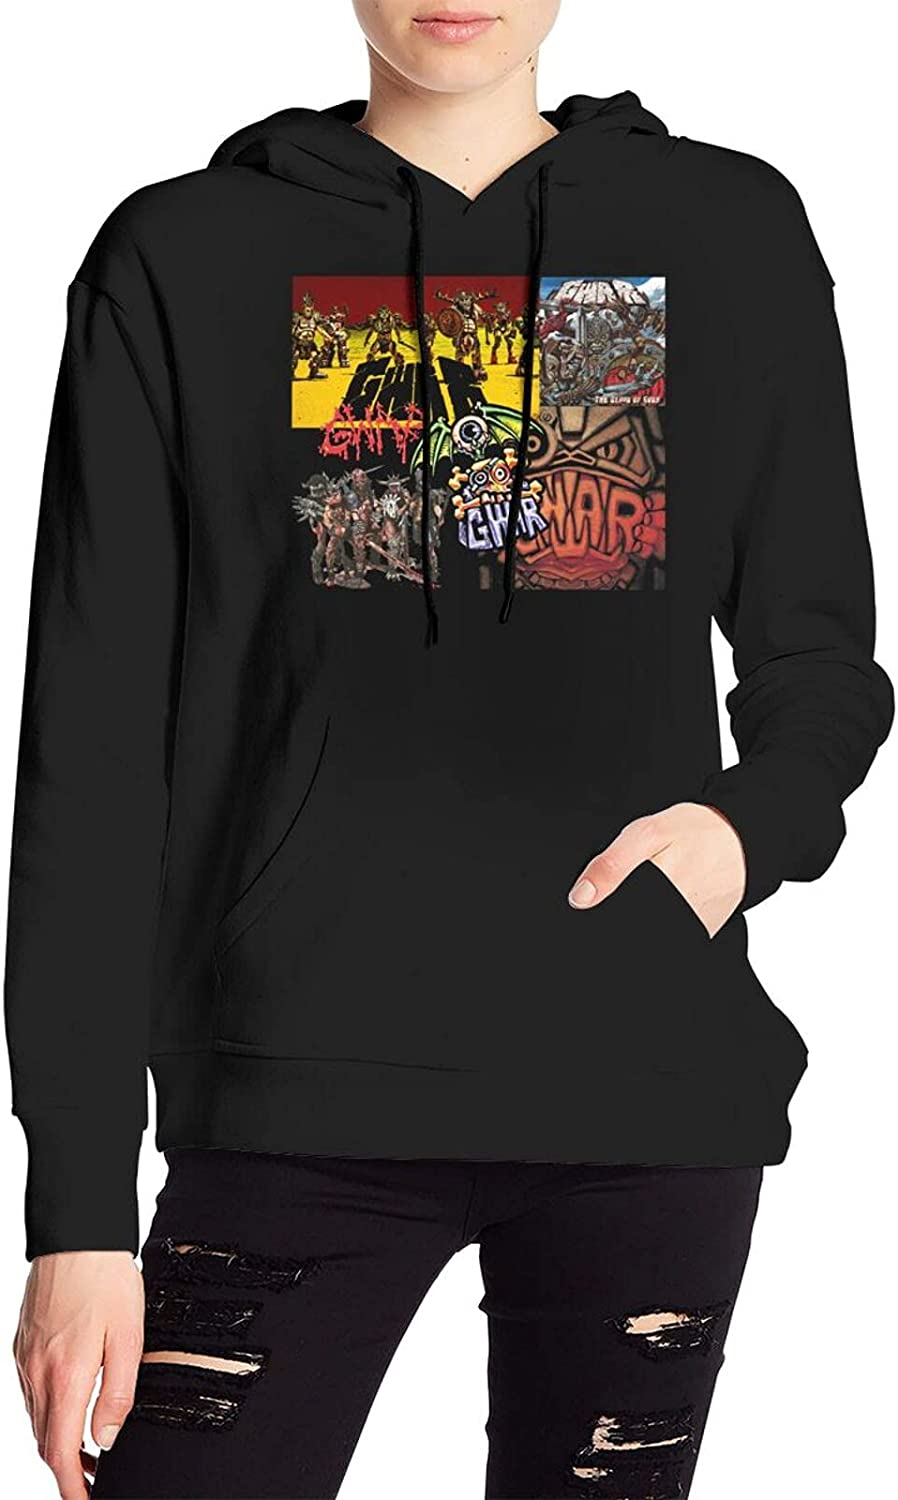 Gwar Sweater Graphic Hoody With Pocket For Men Women